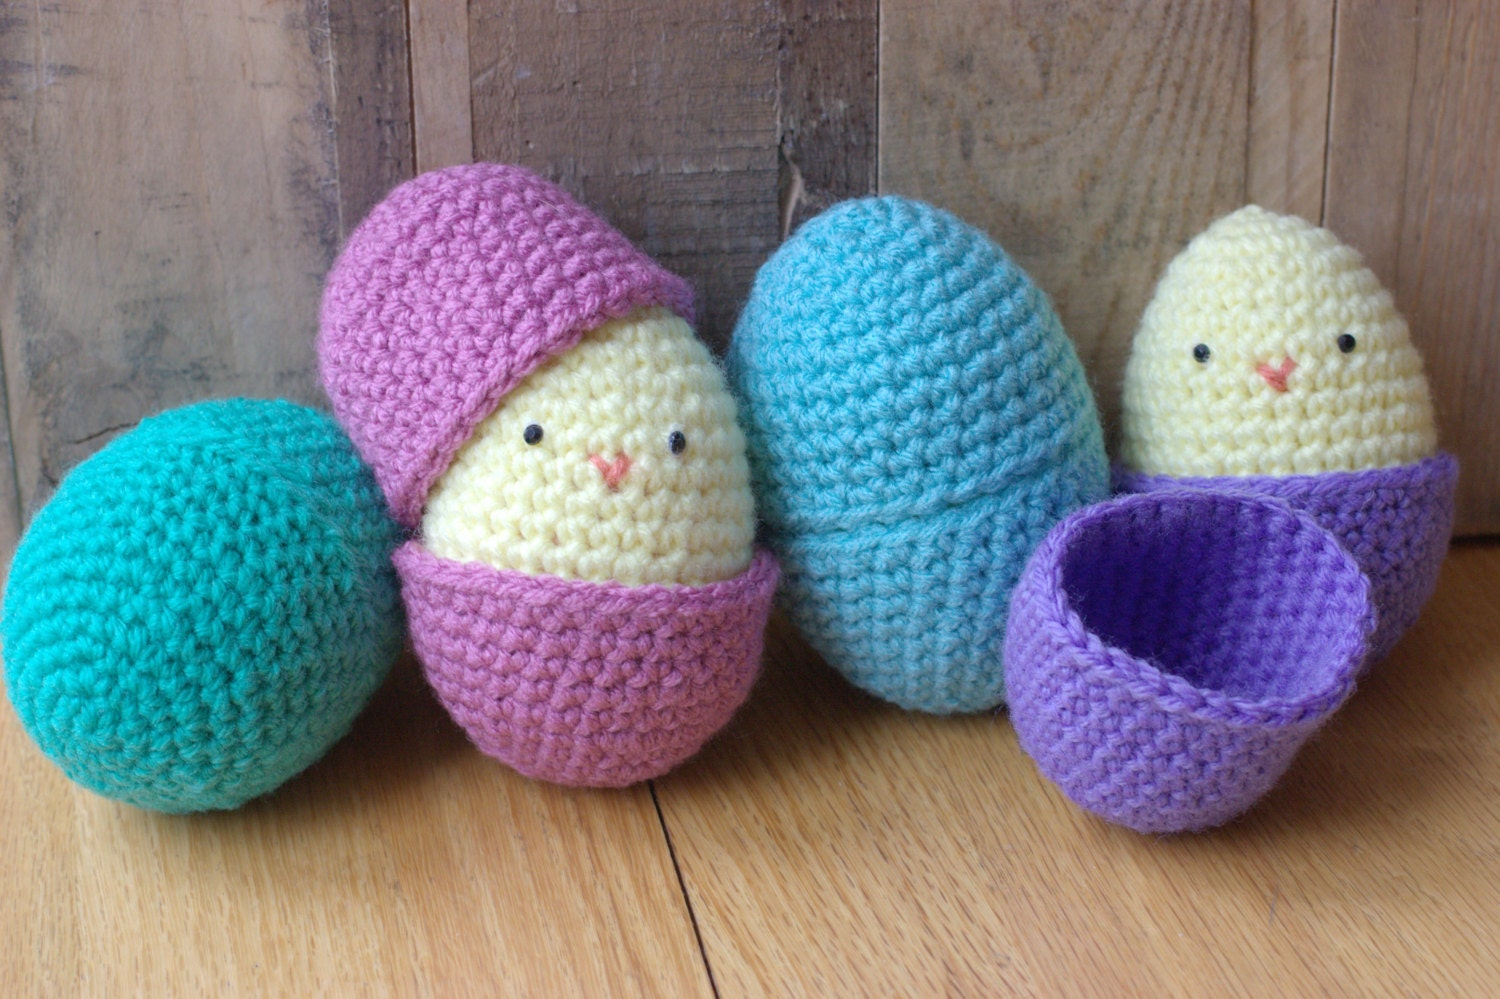 Amigurumi Easter Eggs Crochet Pattern : Crochet PATTERN Amigurumi Easter Egg Chick Toy by littlepunky